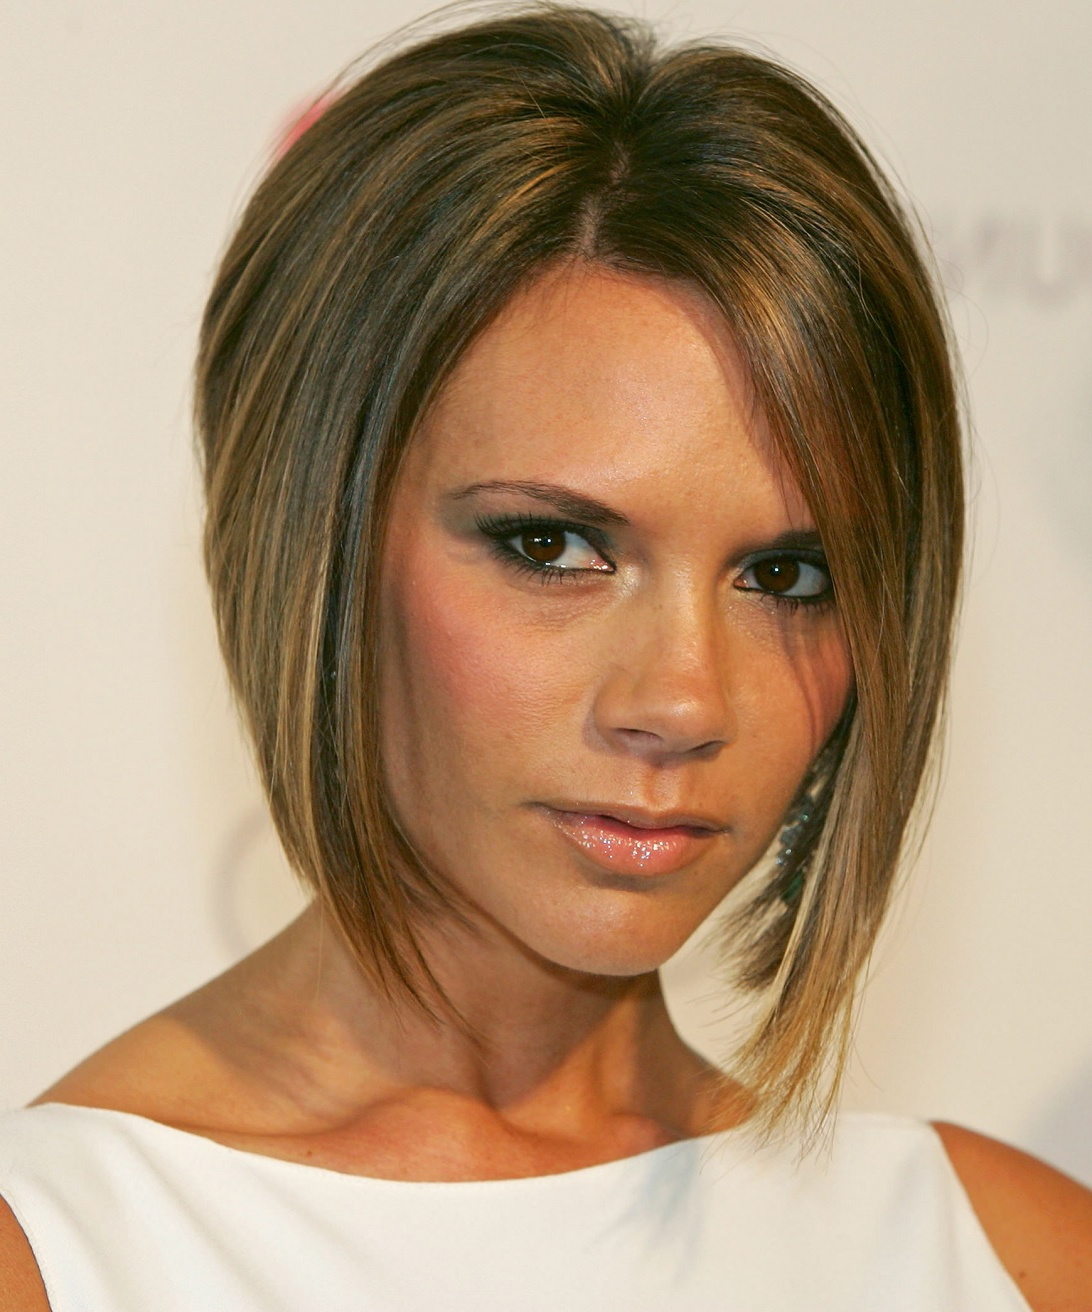 Top 5 Short Haircuts For Women To Make You Look Younger In Current Medium Haircuts To Look Younger (View 11 of 20)